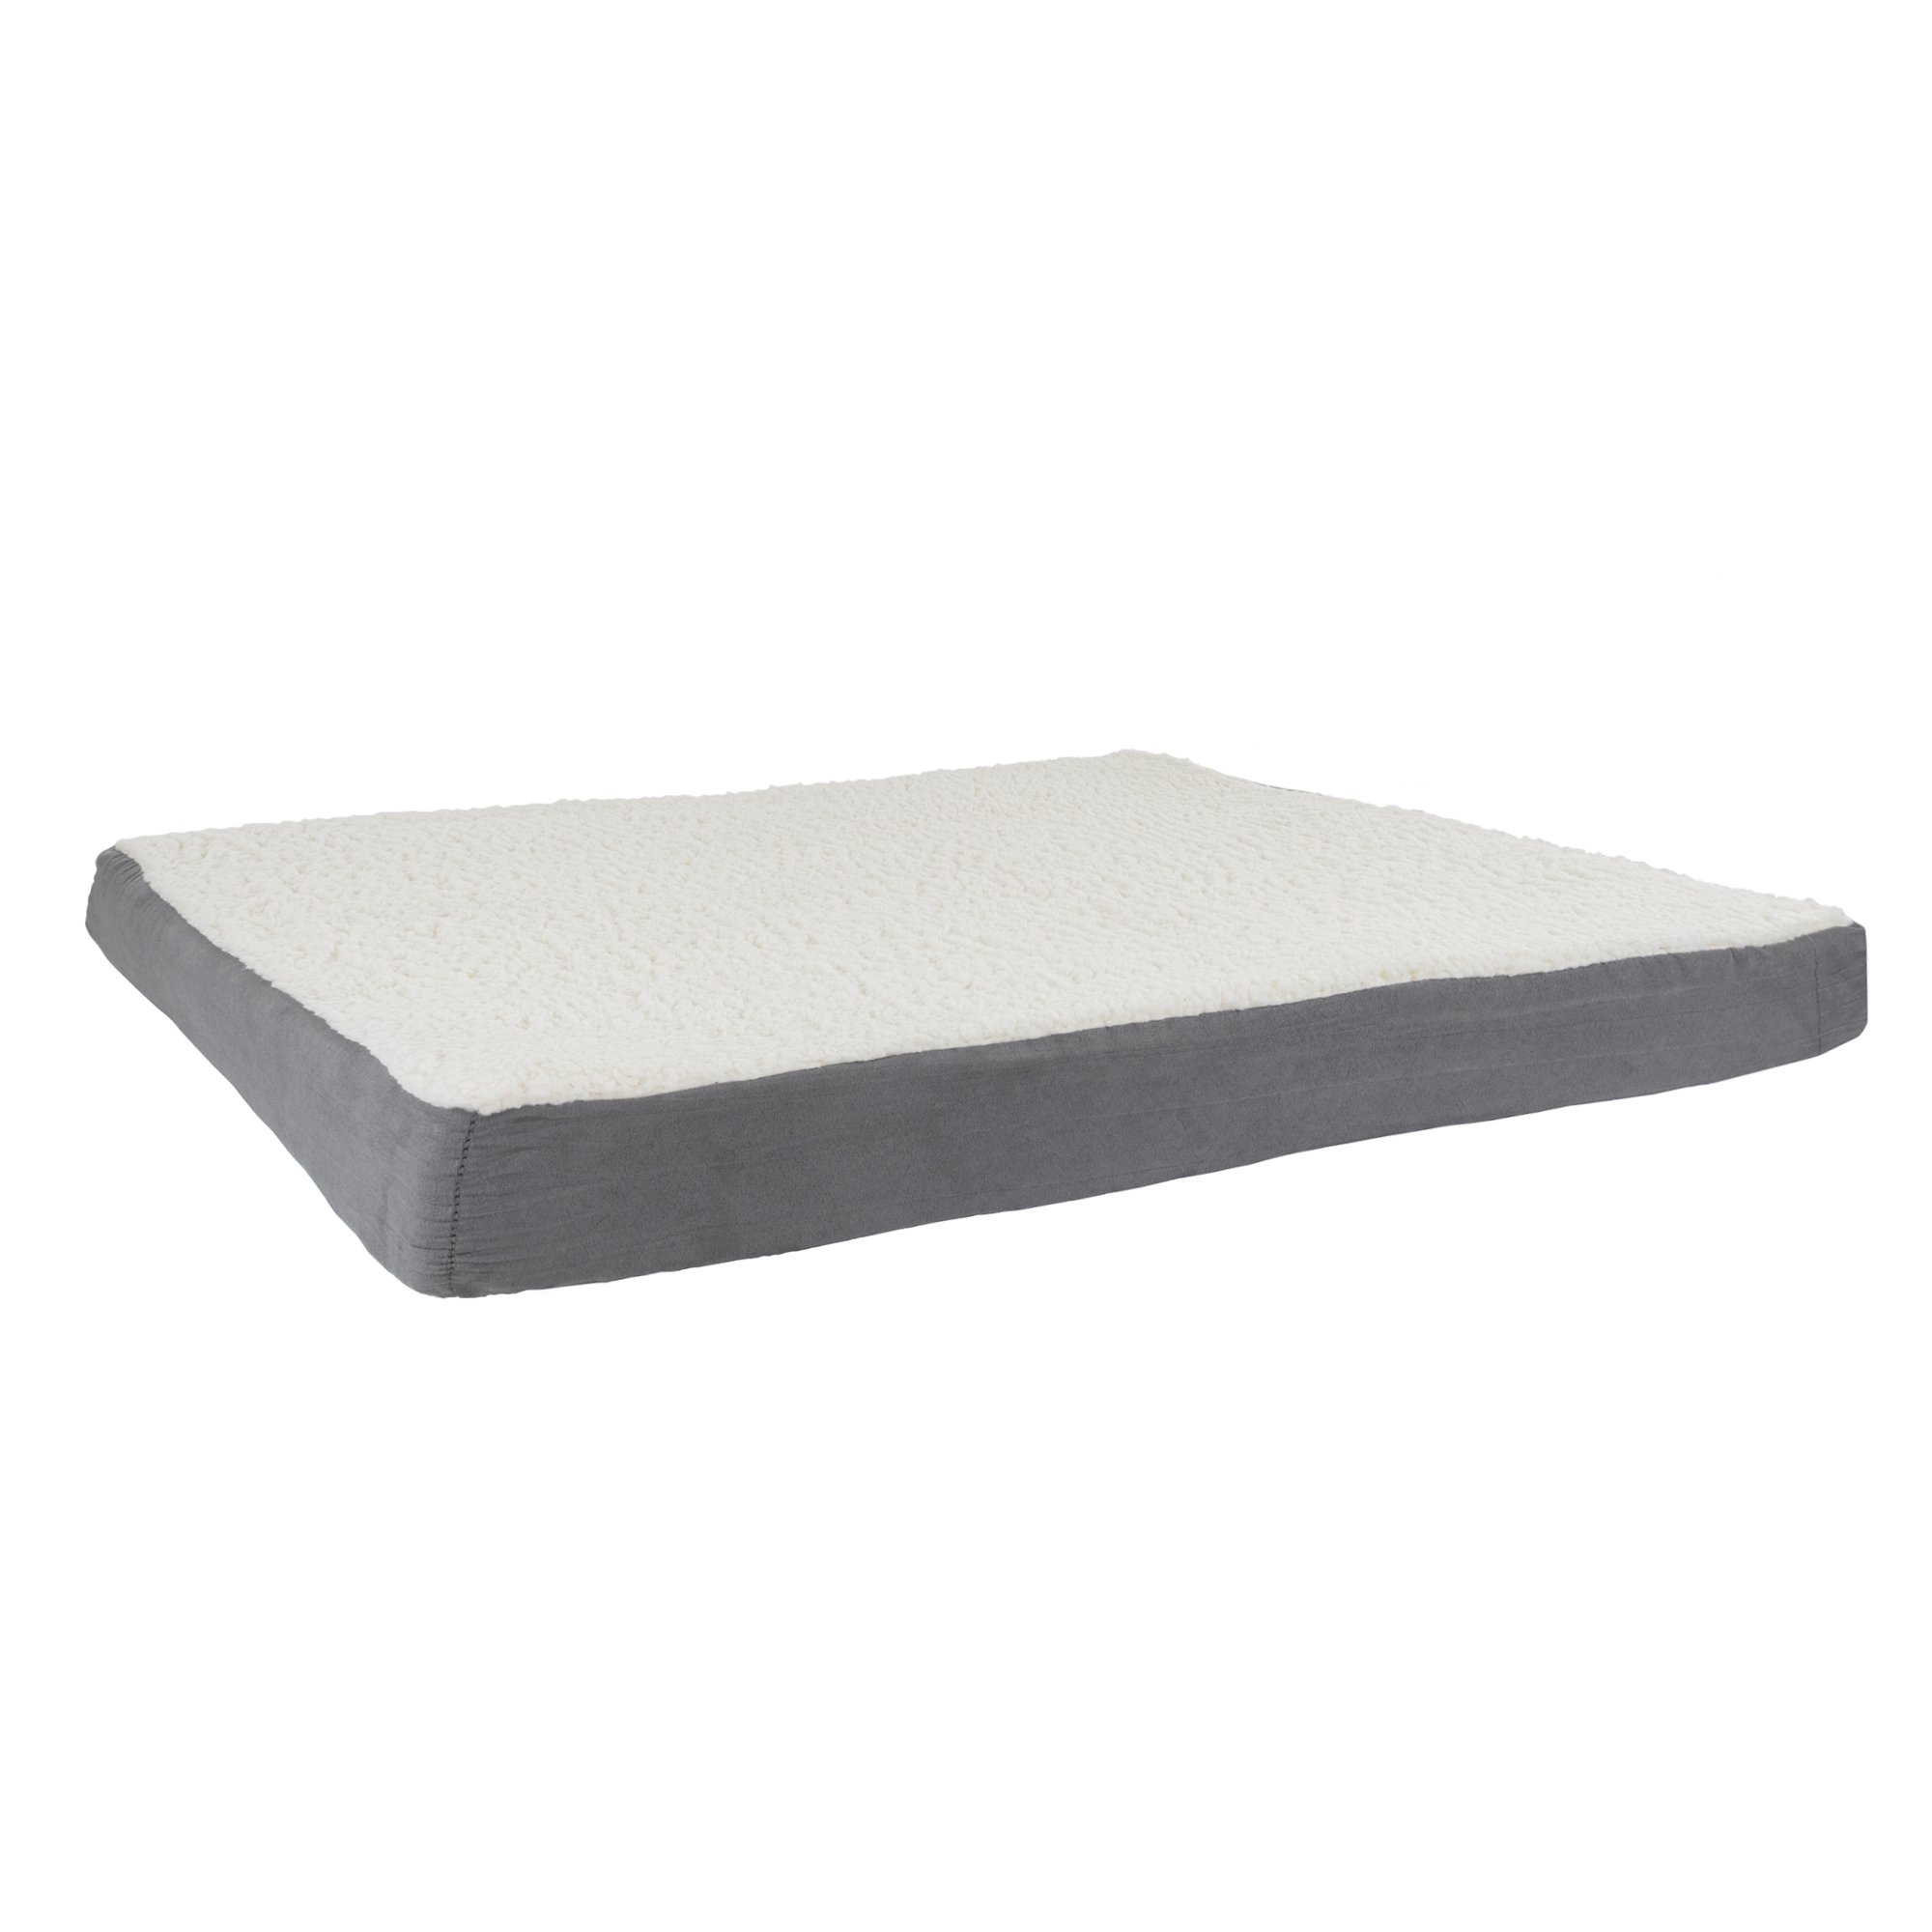 PETMAKER Orthopedic Sherpa Top Pet Bed with Memory Foam and Removeable Cover 44x35x4.75 Gray by PETMAKER